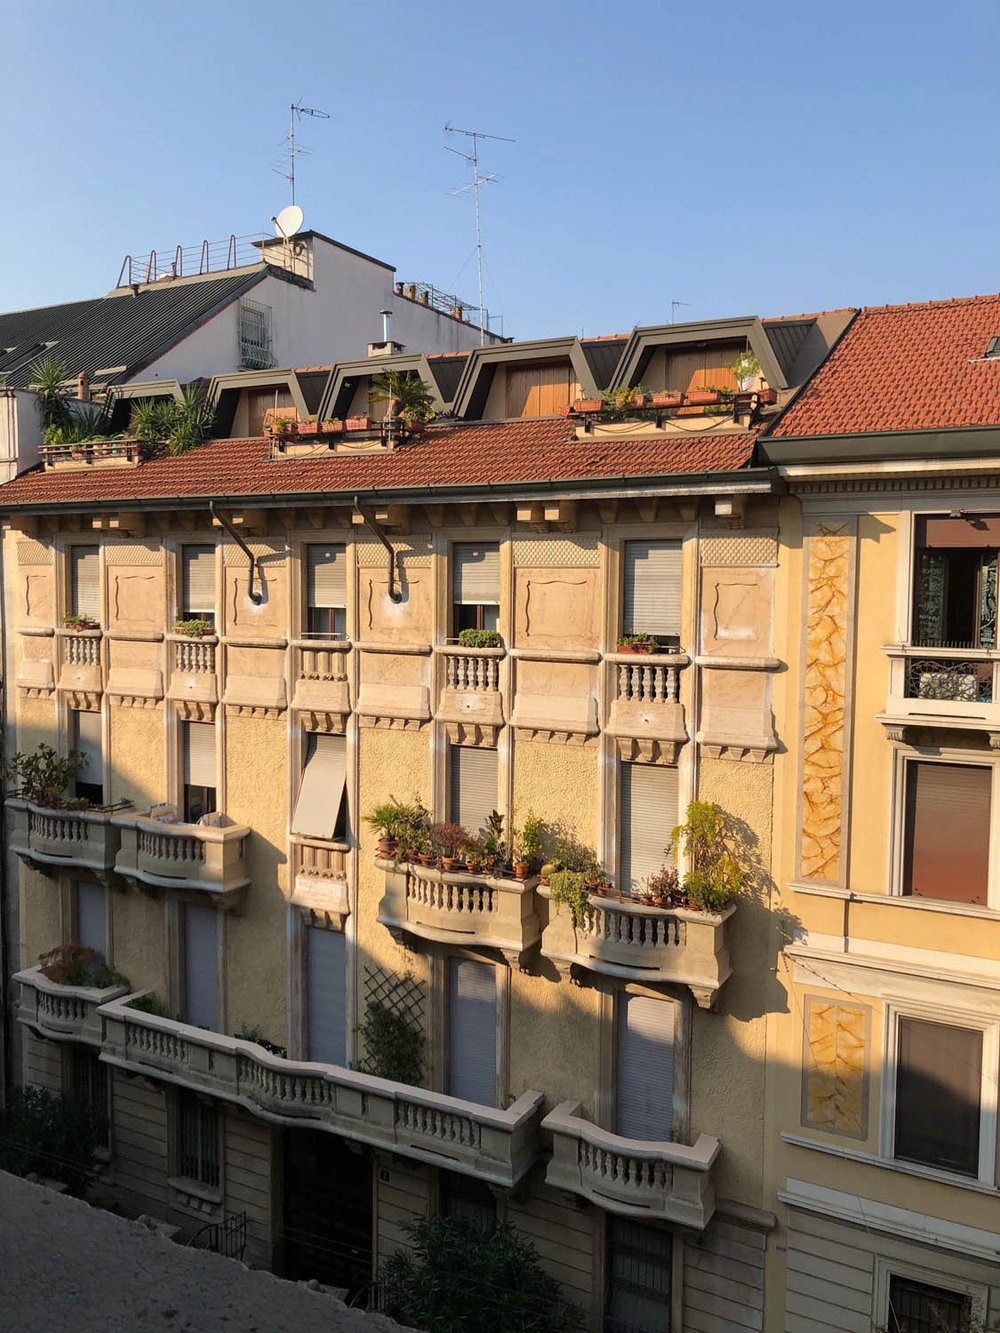 View from my terrace in Milan, Italy